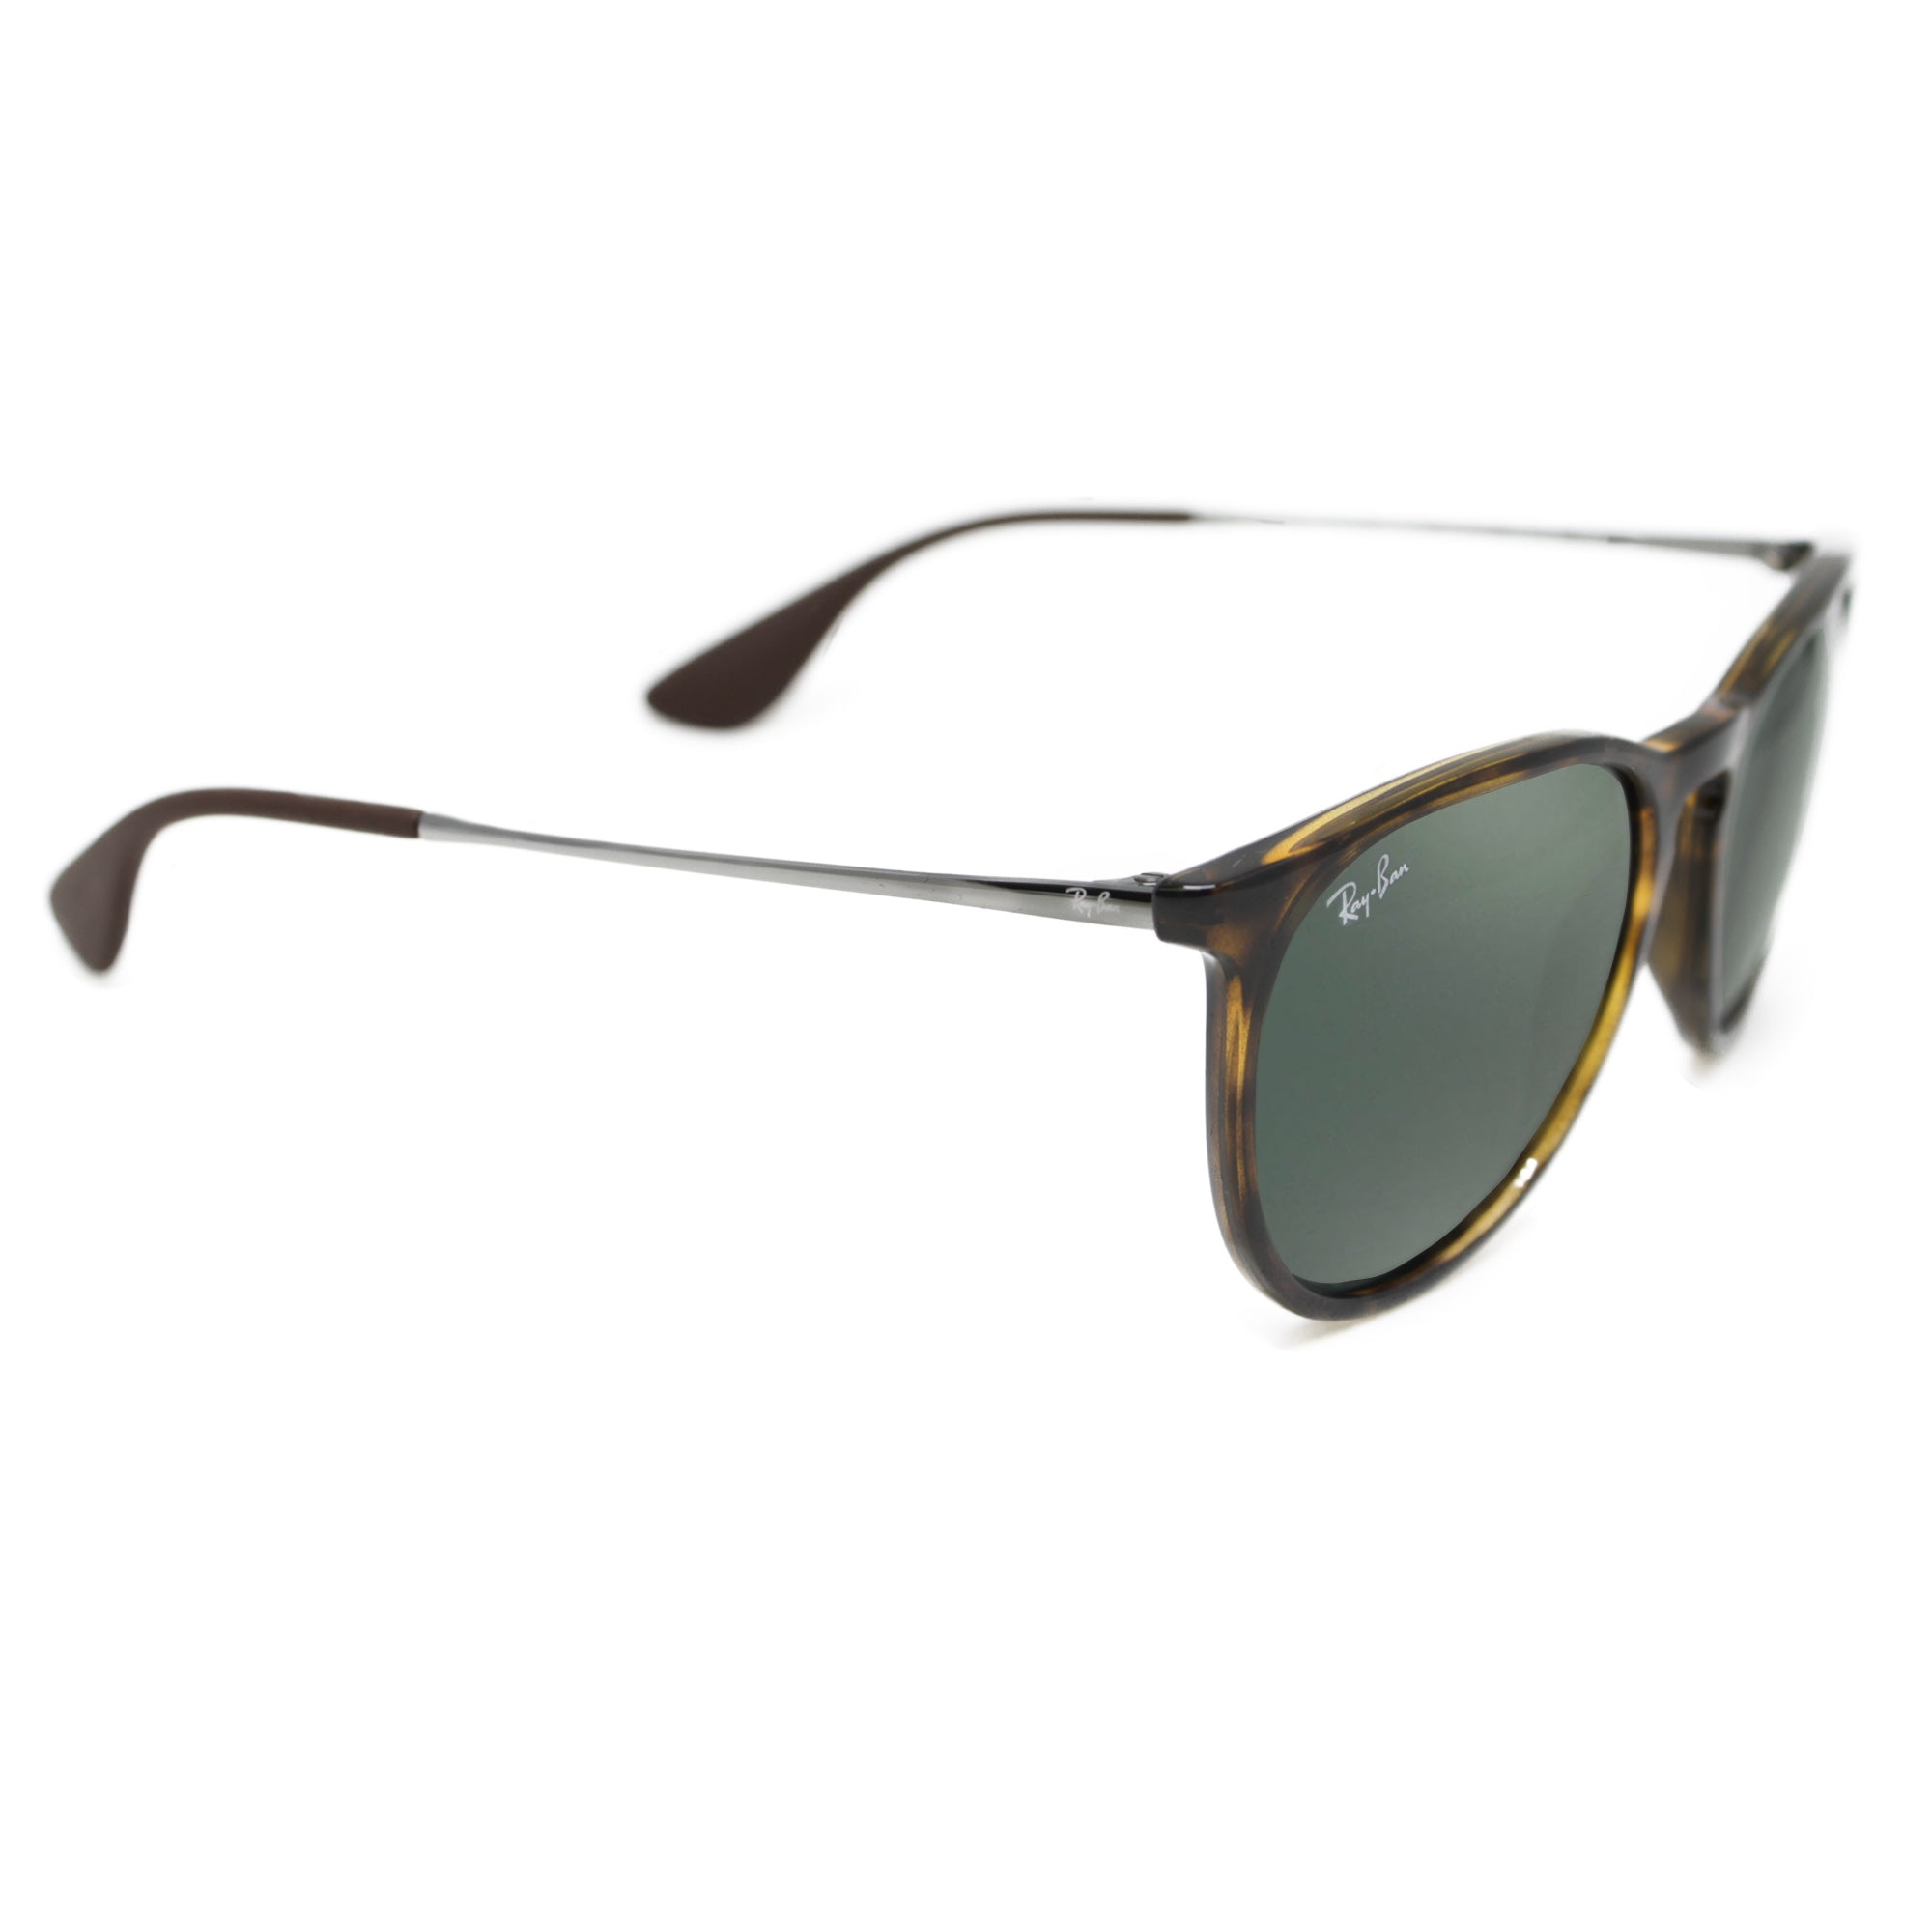 0ab70beef36 Ray-Ban ERIKA 4171 UNISEX - BLACK - DARK GREEN 710-71-54 ...